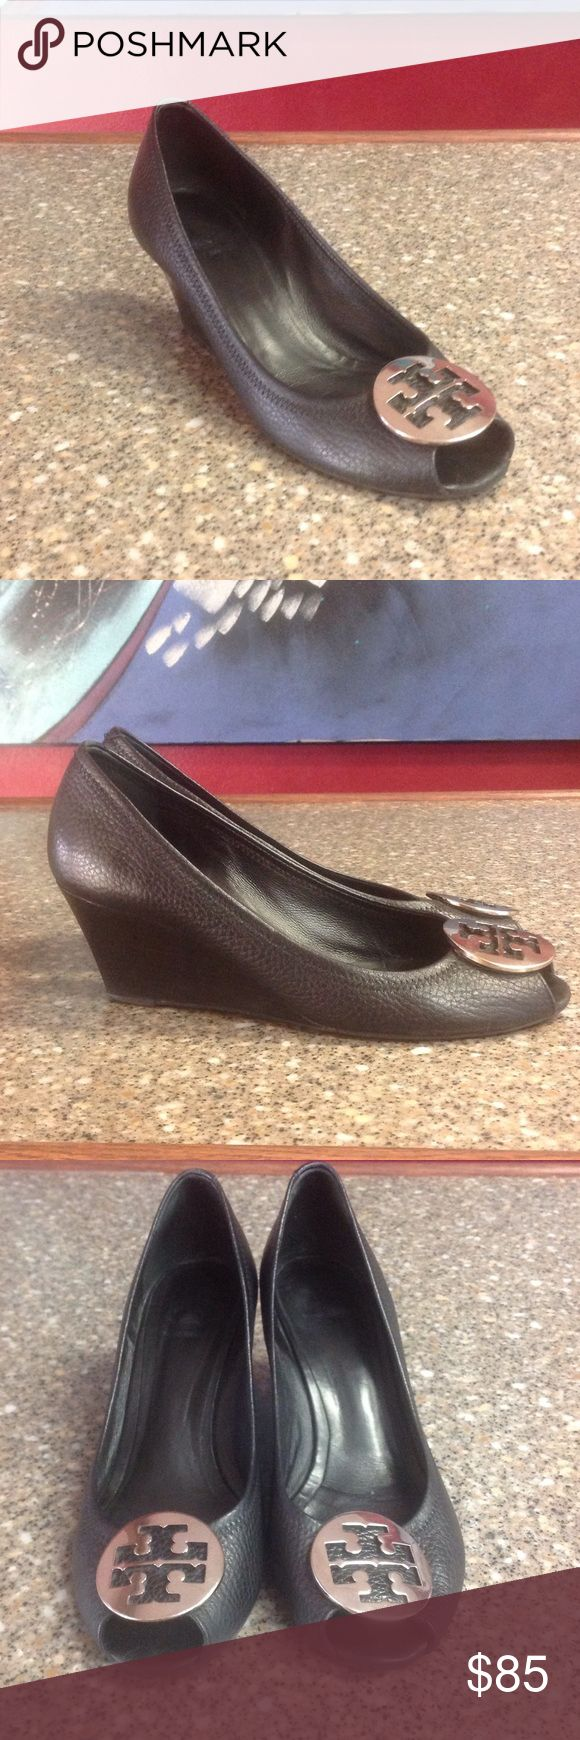 Tory Burch black leather shoes In great used condition. No major signs of wear on the leather. Please enlarge photos for more details.                           h Tory Burch Shoes